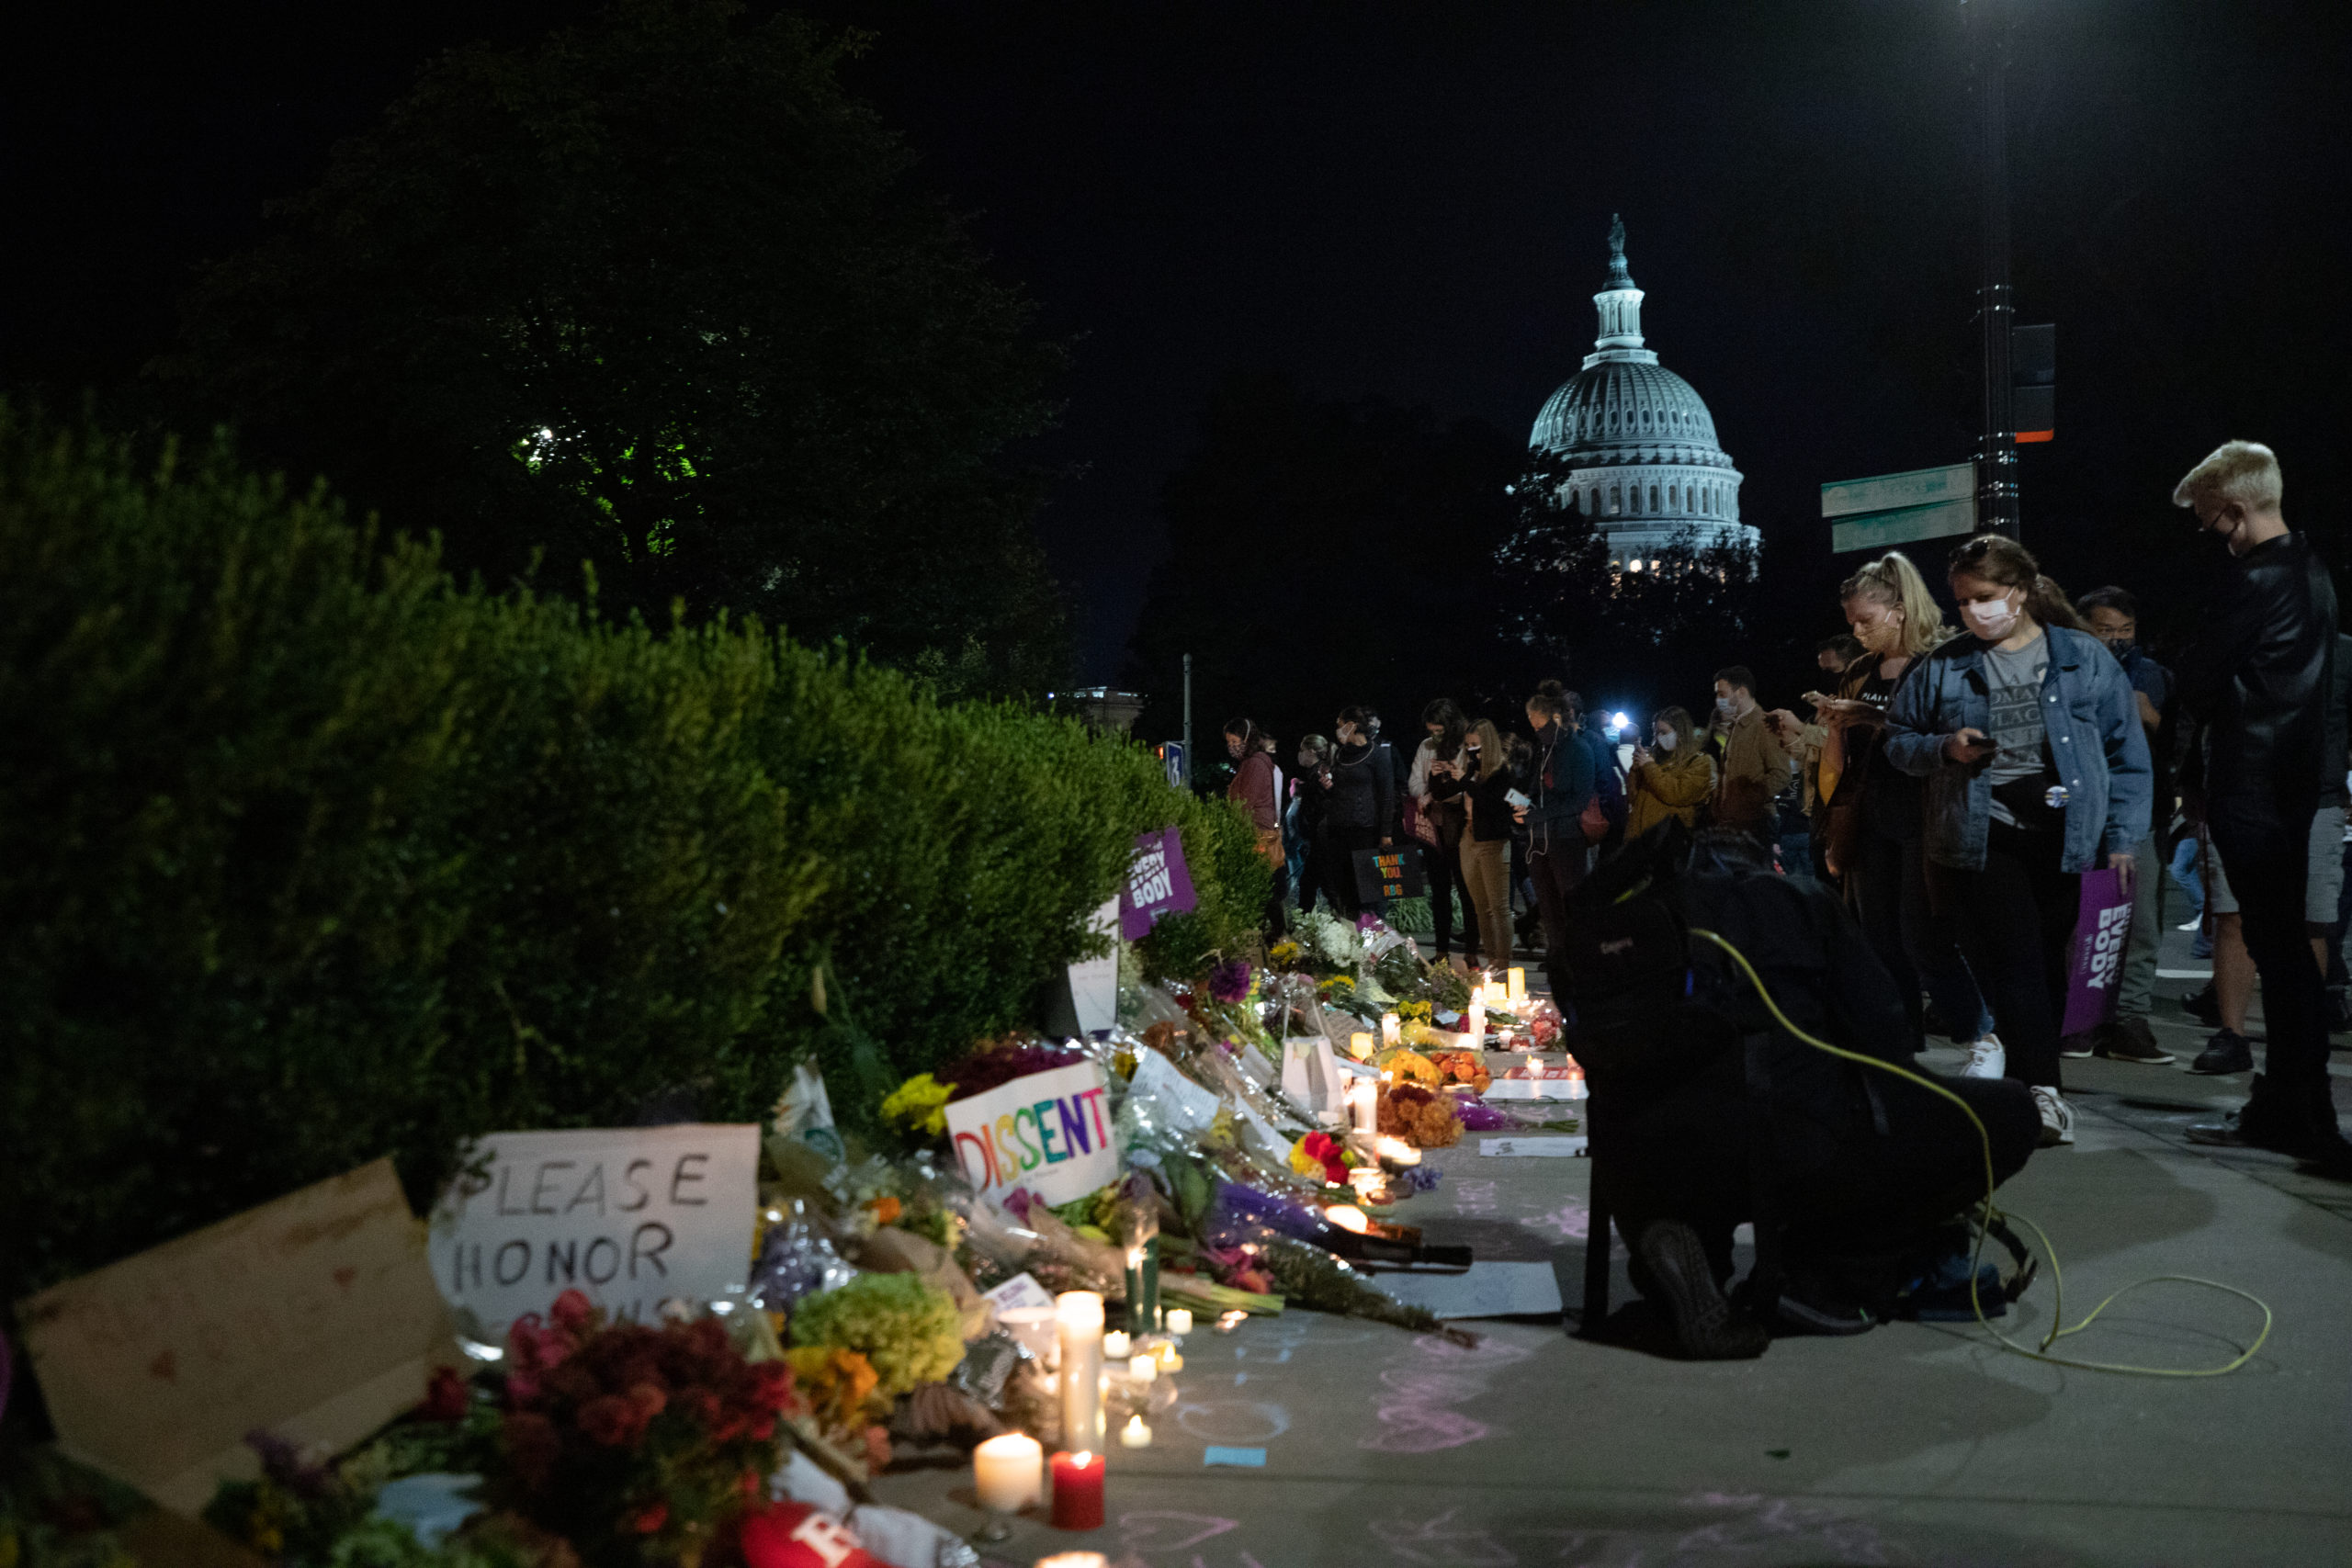 Mourners place candles, flowers, signs, and other memorabilia outside the Supreme Court at a memorial honoring the late Justice Ruth Bader Ginsburg on Sept. 19, 2020. (Photo: Kaylee Greenlee / The DCNF)